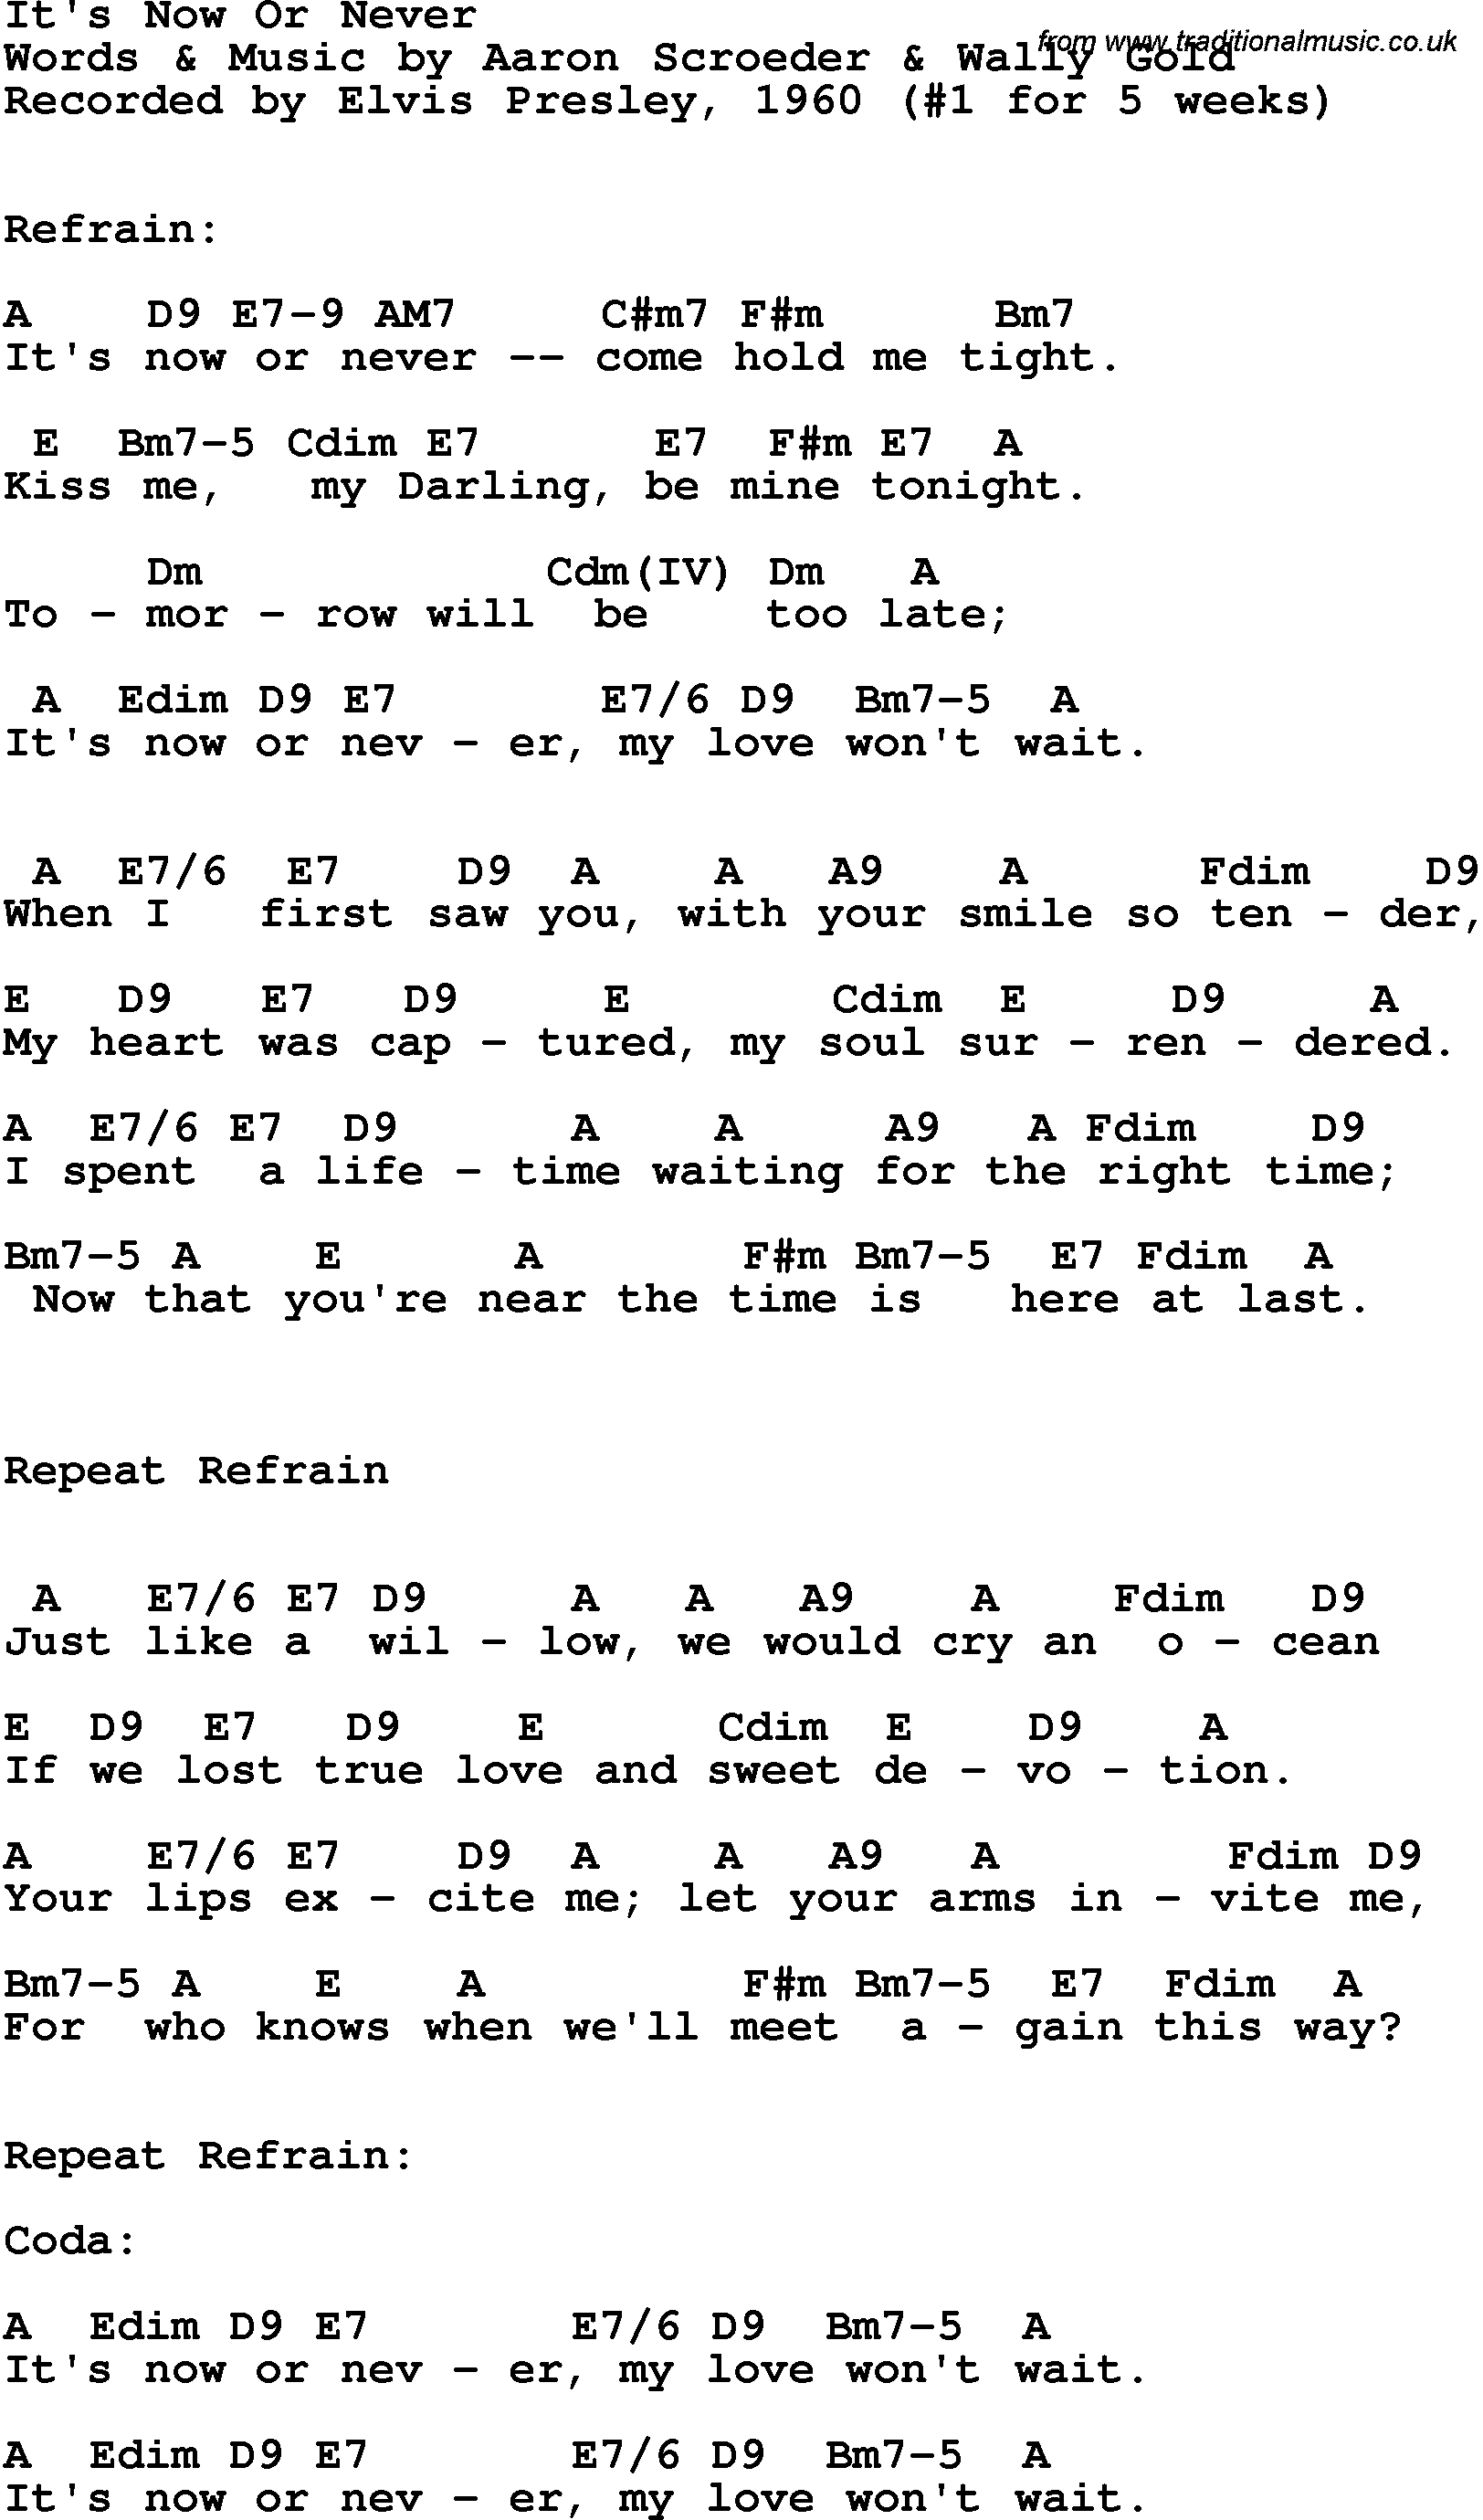 Song Lyrics With Guitar Chords For Its Now Or Never Elvis Presley